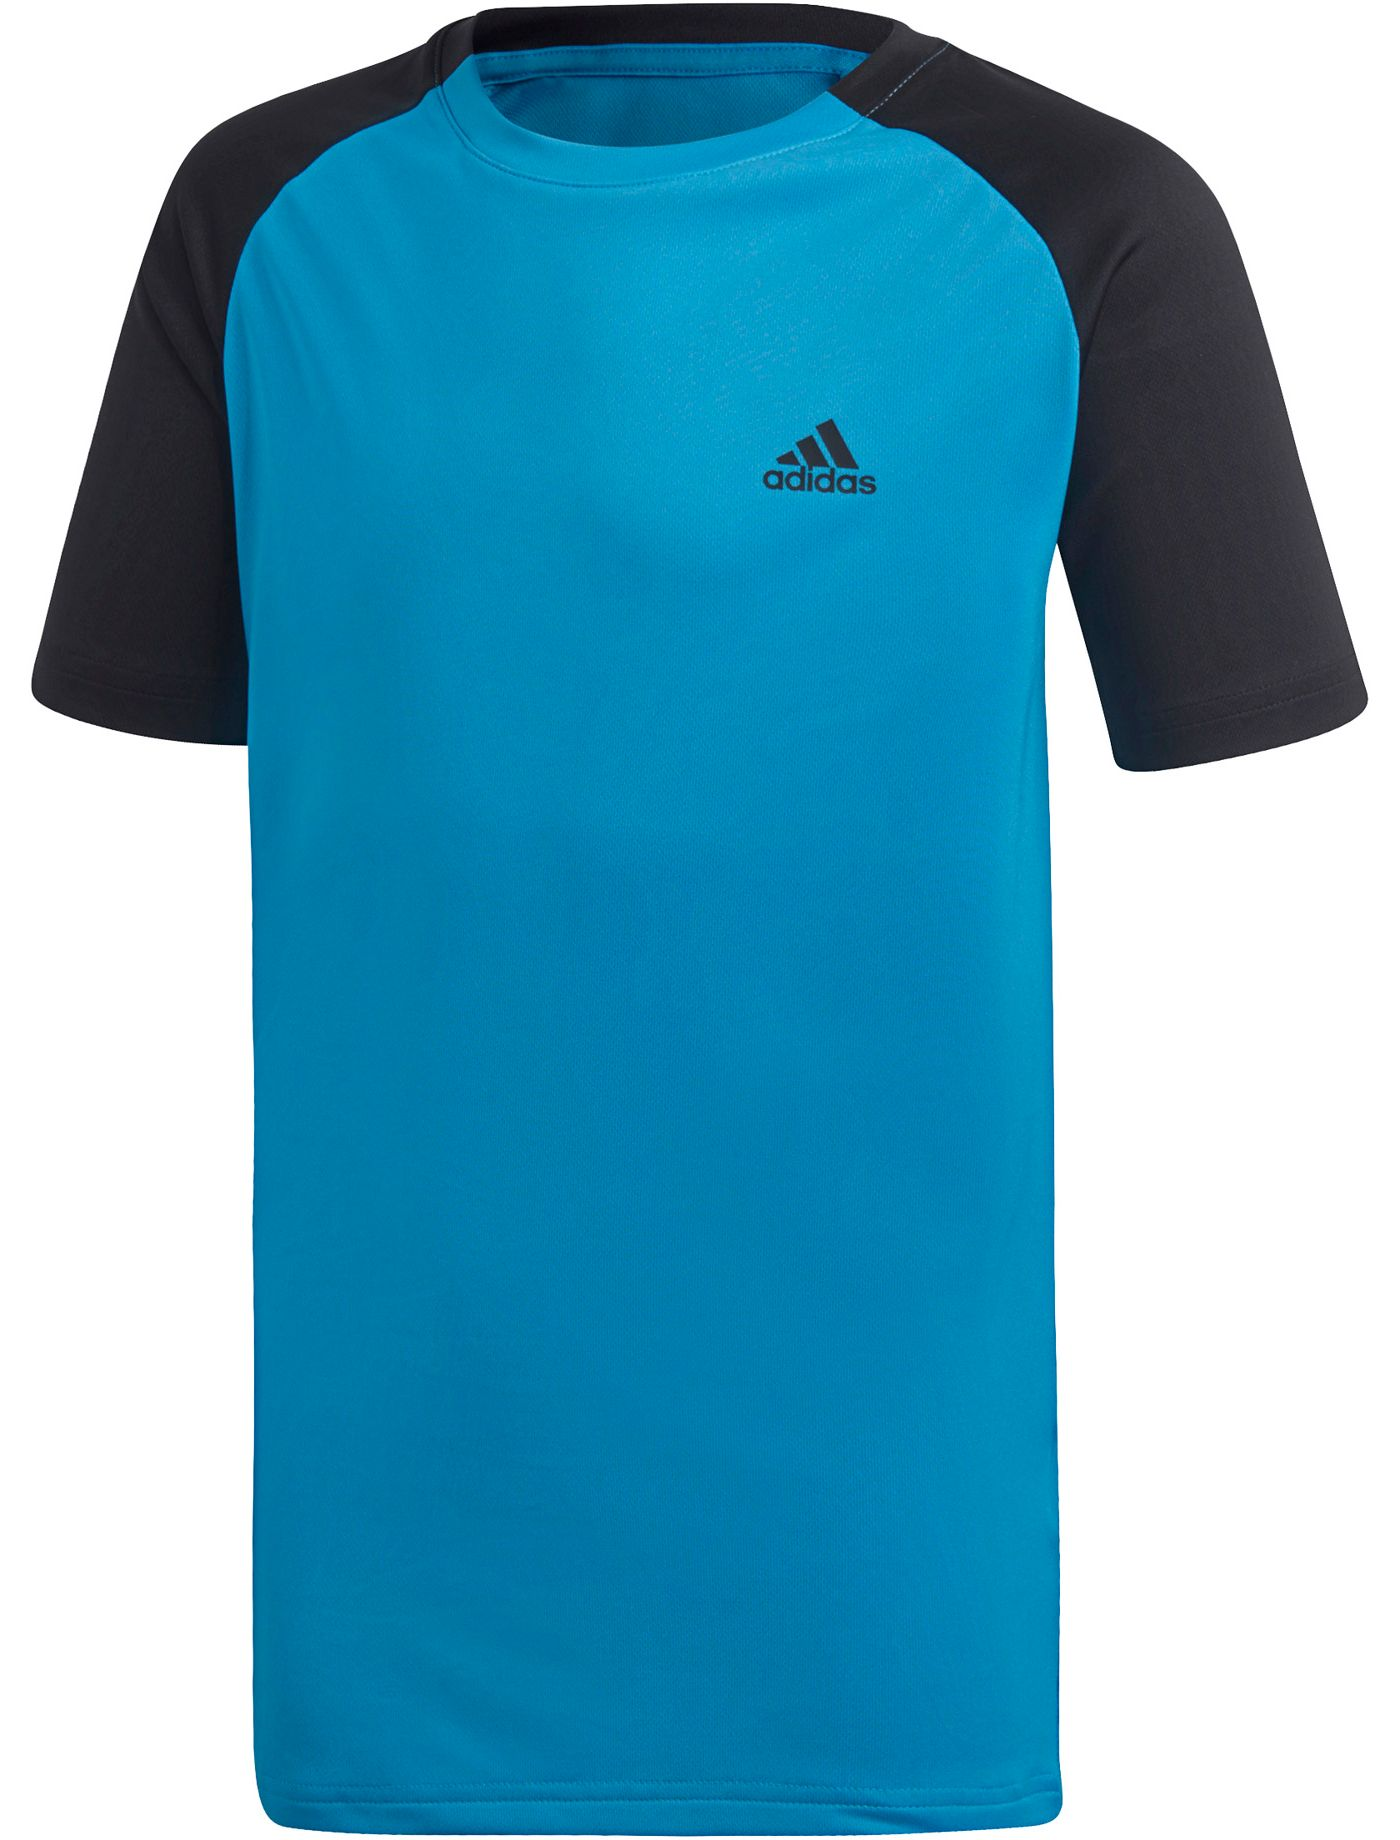 adidas Boys' Club Tennis T-Shirt